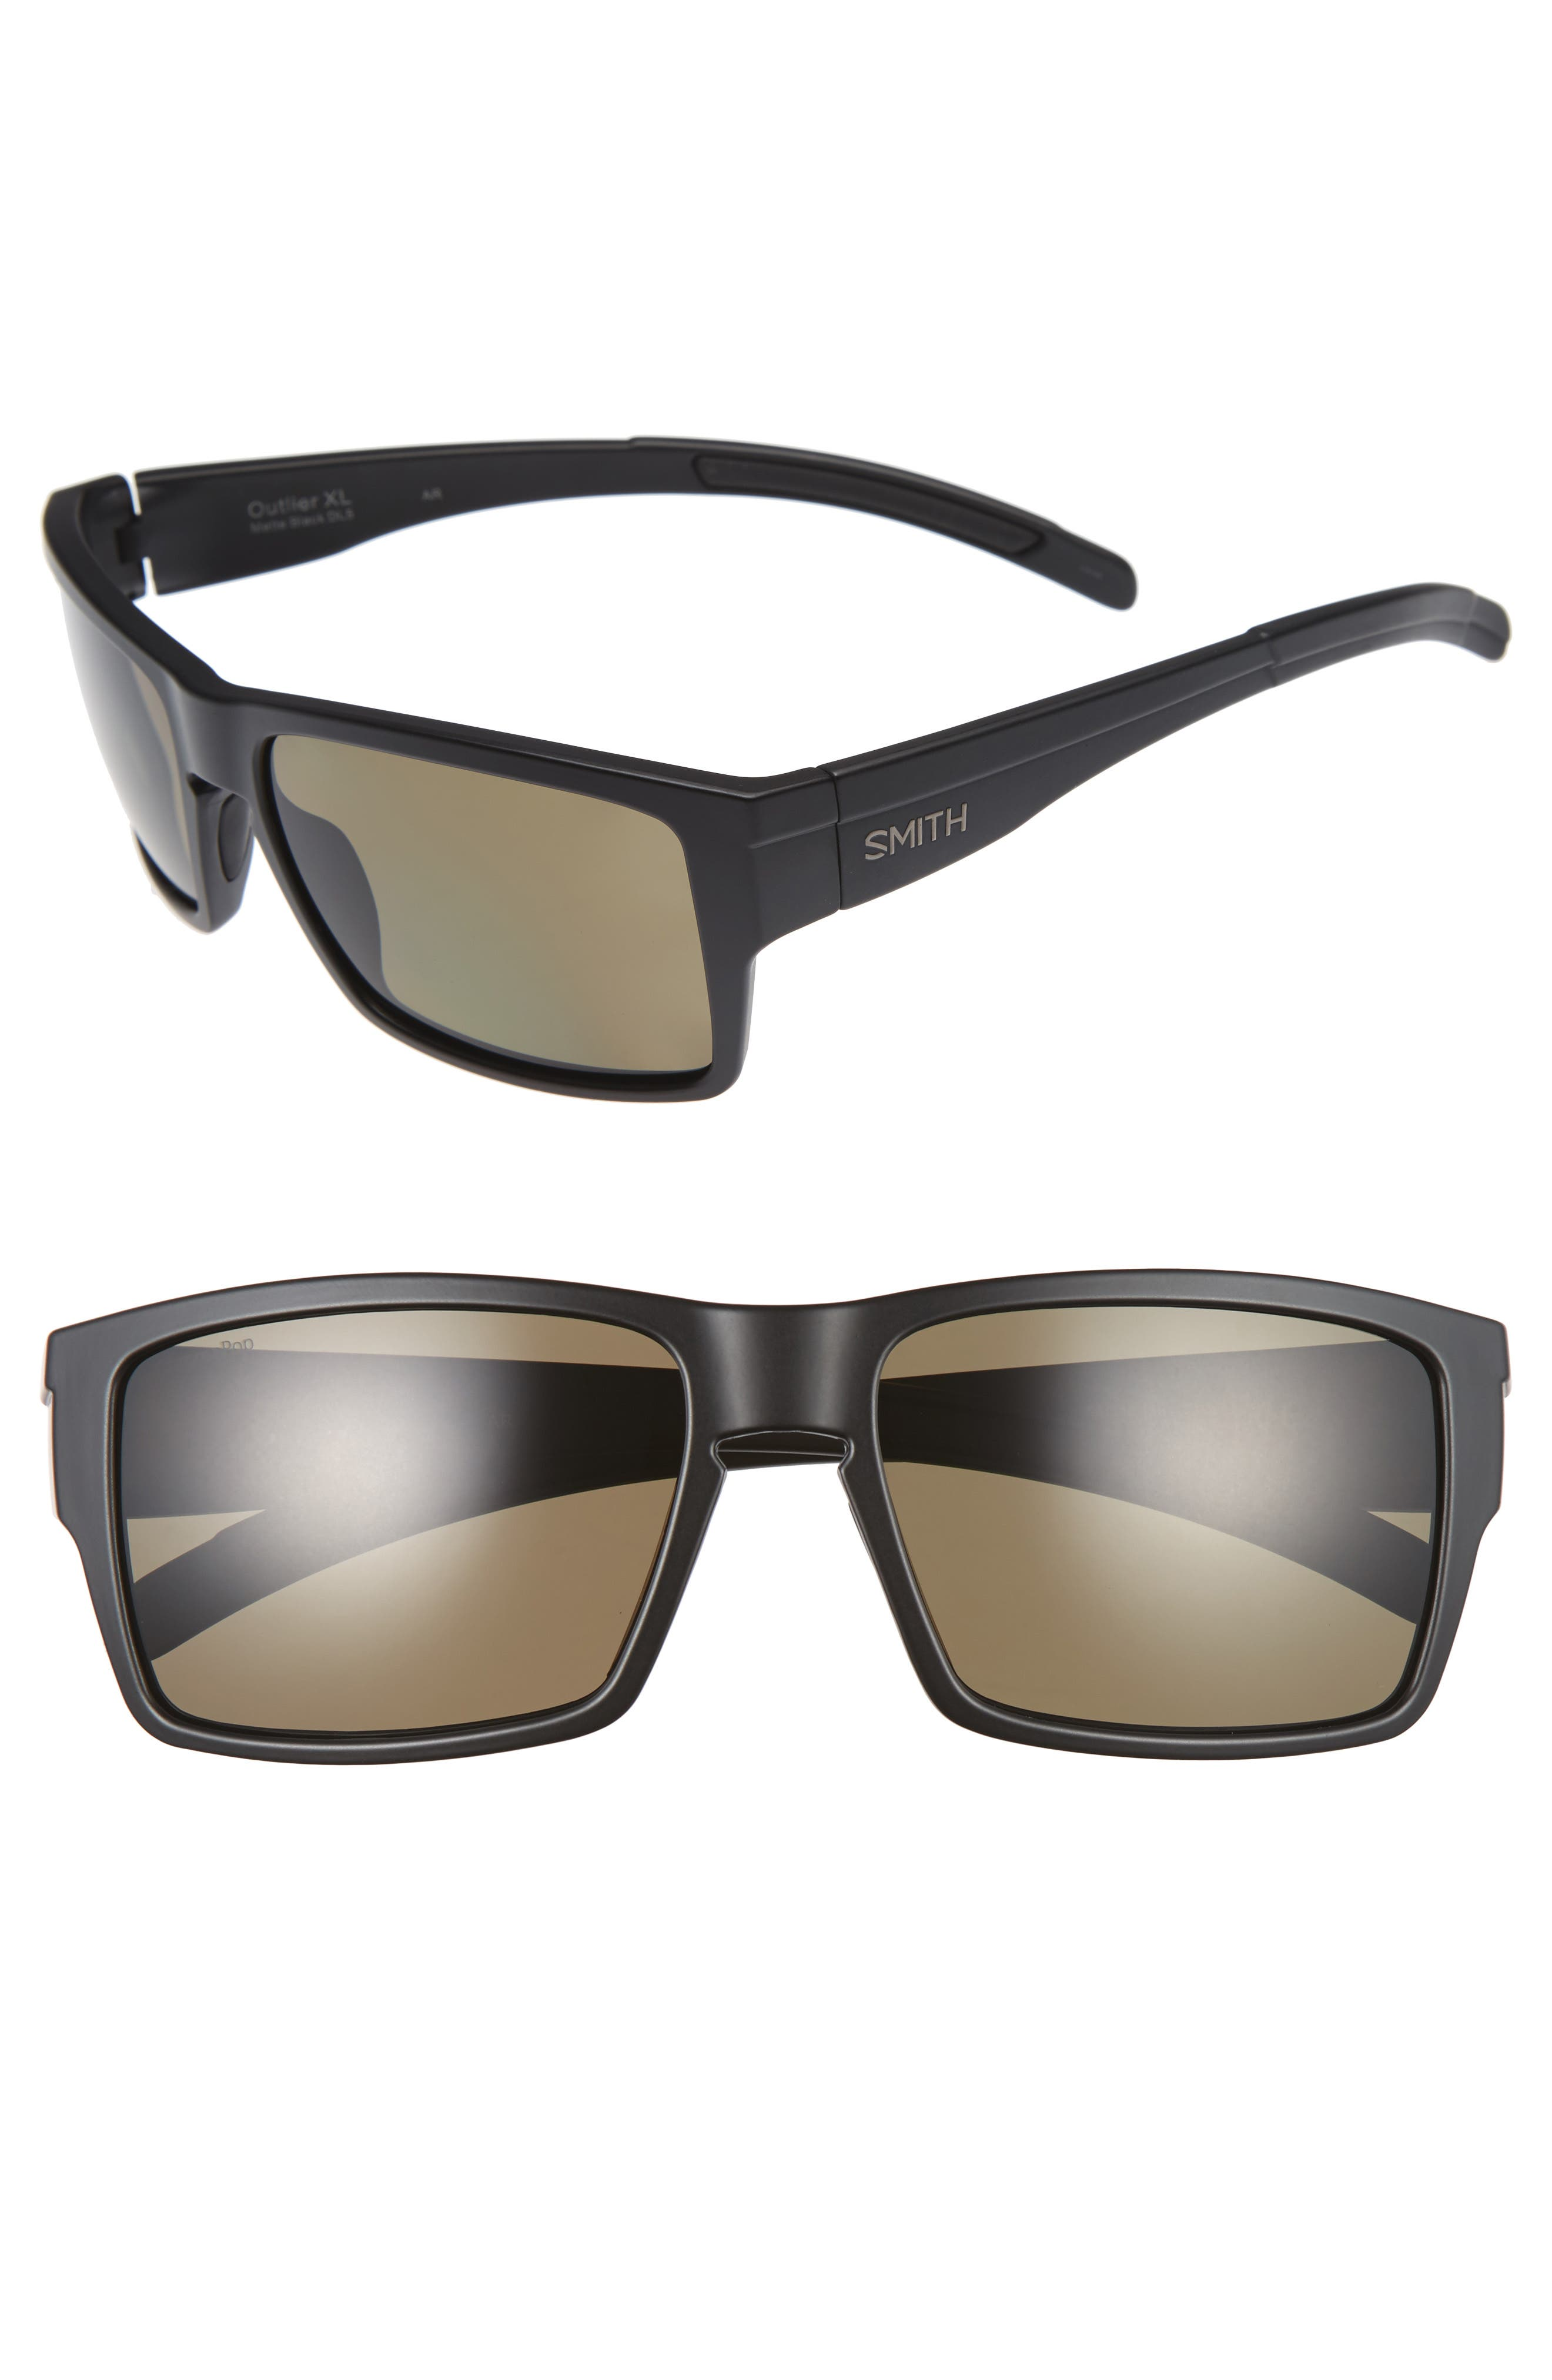 Outlier XL 58mm Polarized Sunglasses,                         Main,                         color, 001